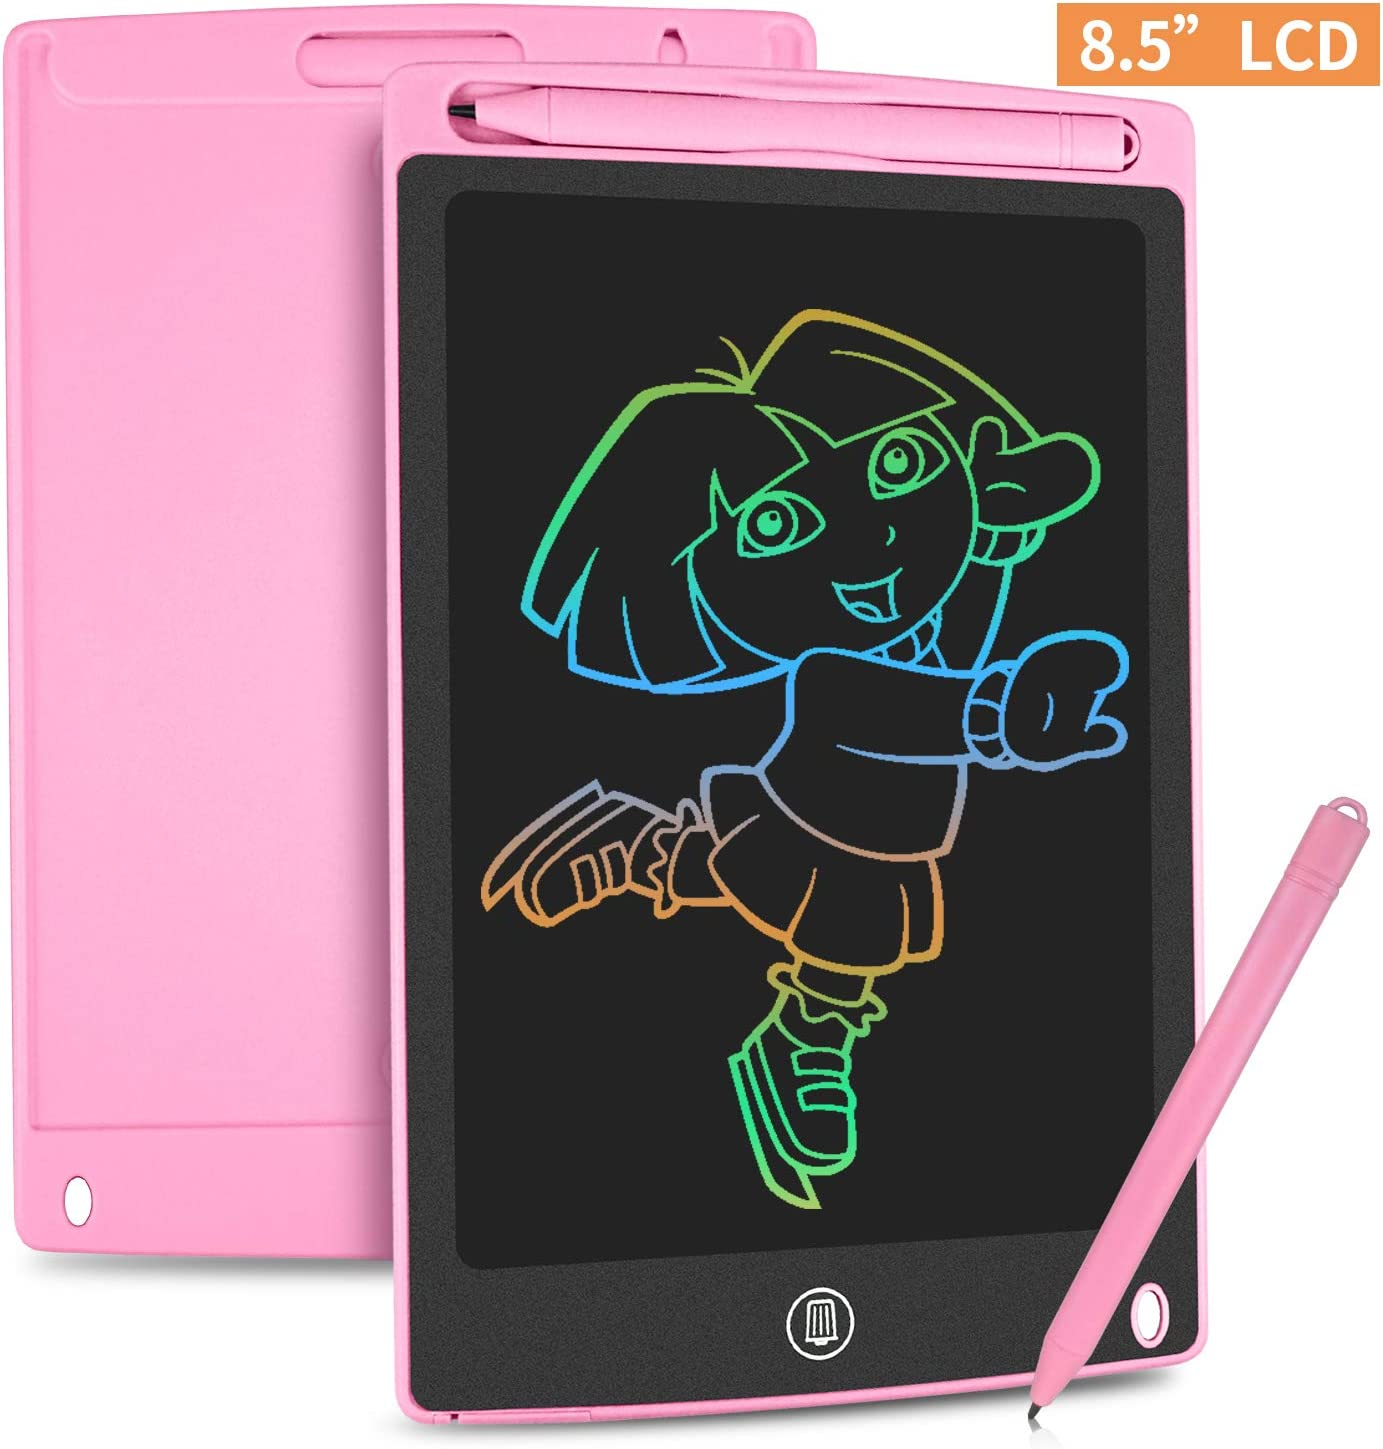 HOMESTEC Tableta Escritura LCD Color 8,5 Pulgadas, Tablet Dibujo, Tablet para Dibujar para Niños. Juguete Educativo (Rosa)